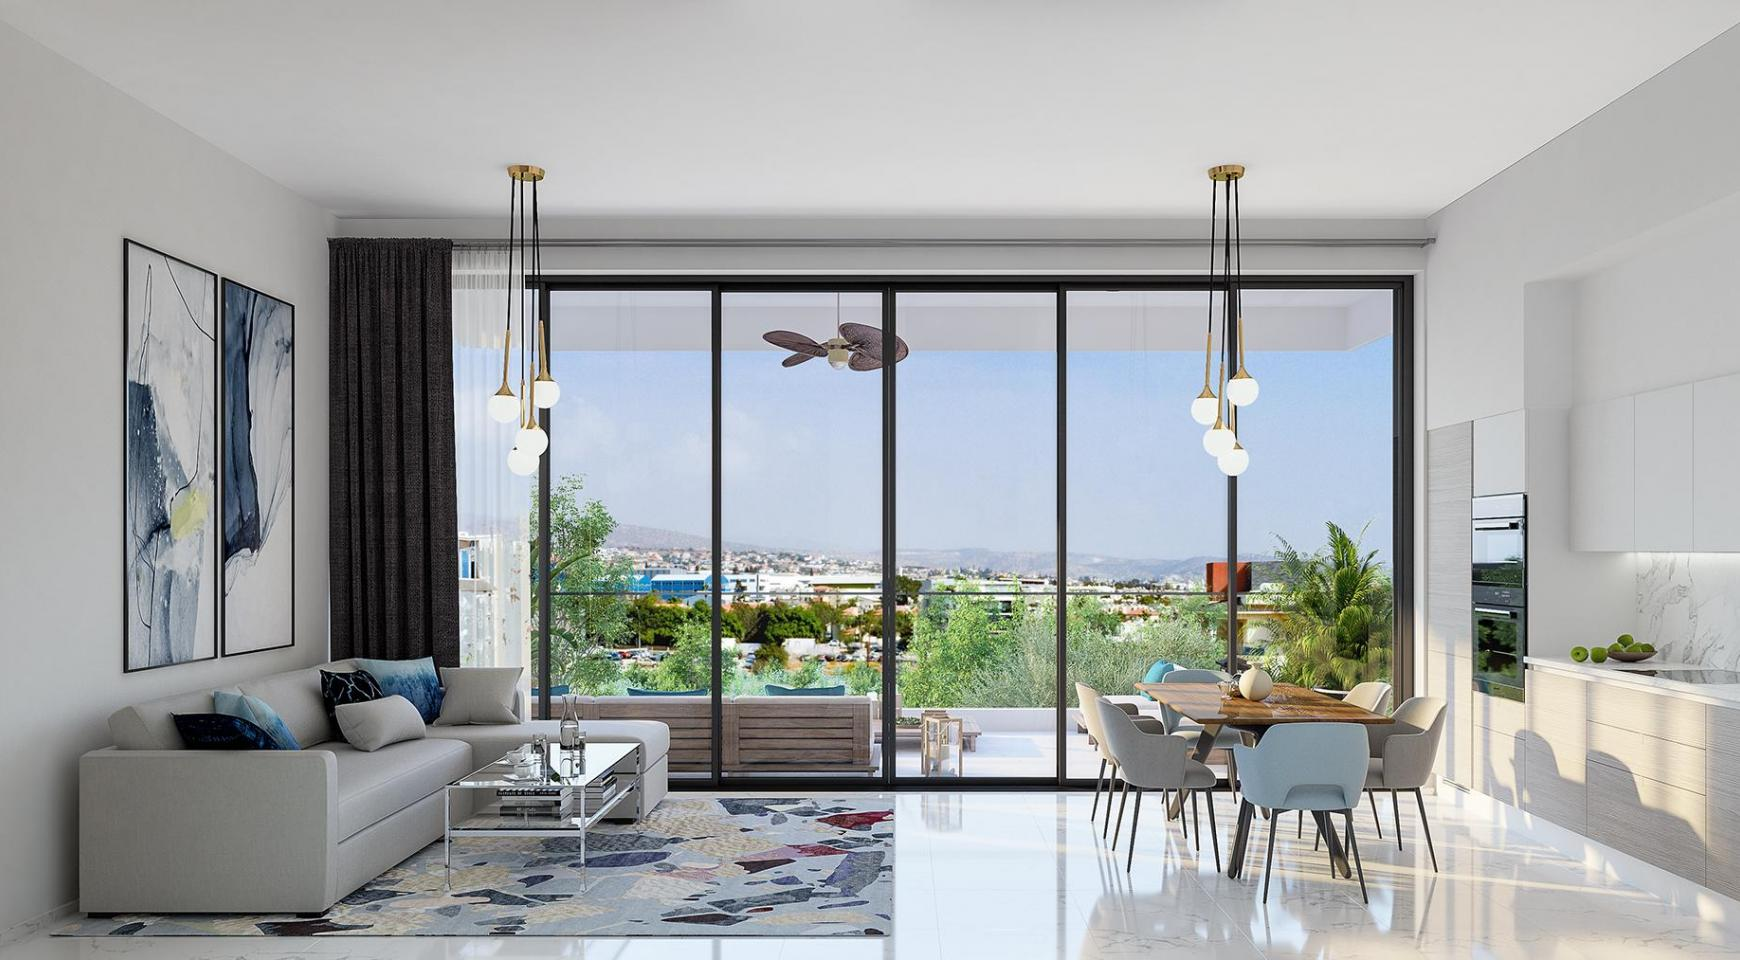 Urban City Residences, Block B. New Spacious 2 Bedroom Apartment 202 in the City Centre - 2